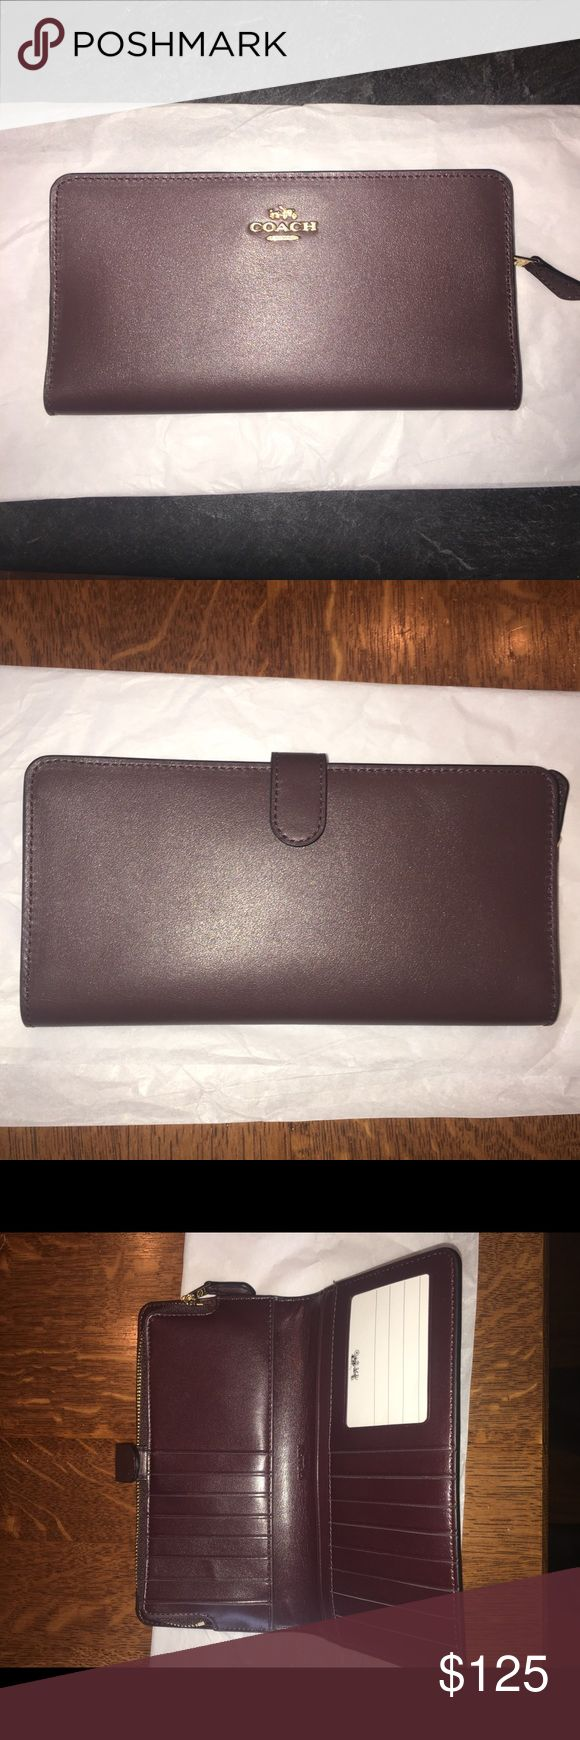 """Coach Skinny Wallet- Oxblood/Light Gold •Refined Calf Leather  •15 Credit Card Slots & ID Window •Full Length Bill Compartments •Zip Coin Pocket •Snap Closure  •7 3/4"""" (L) x 4"""" (H) New (never used)  No Trades/Will Accept Offers Coach Bags Wallets"""